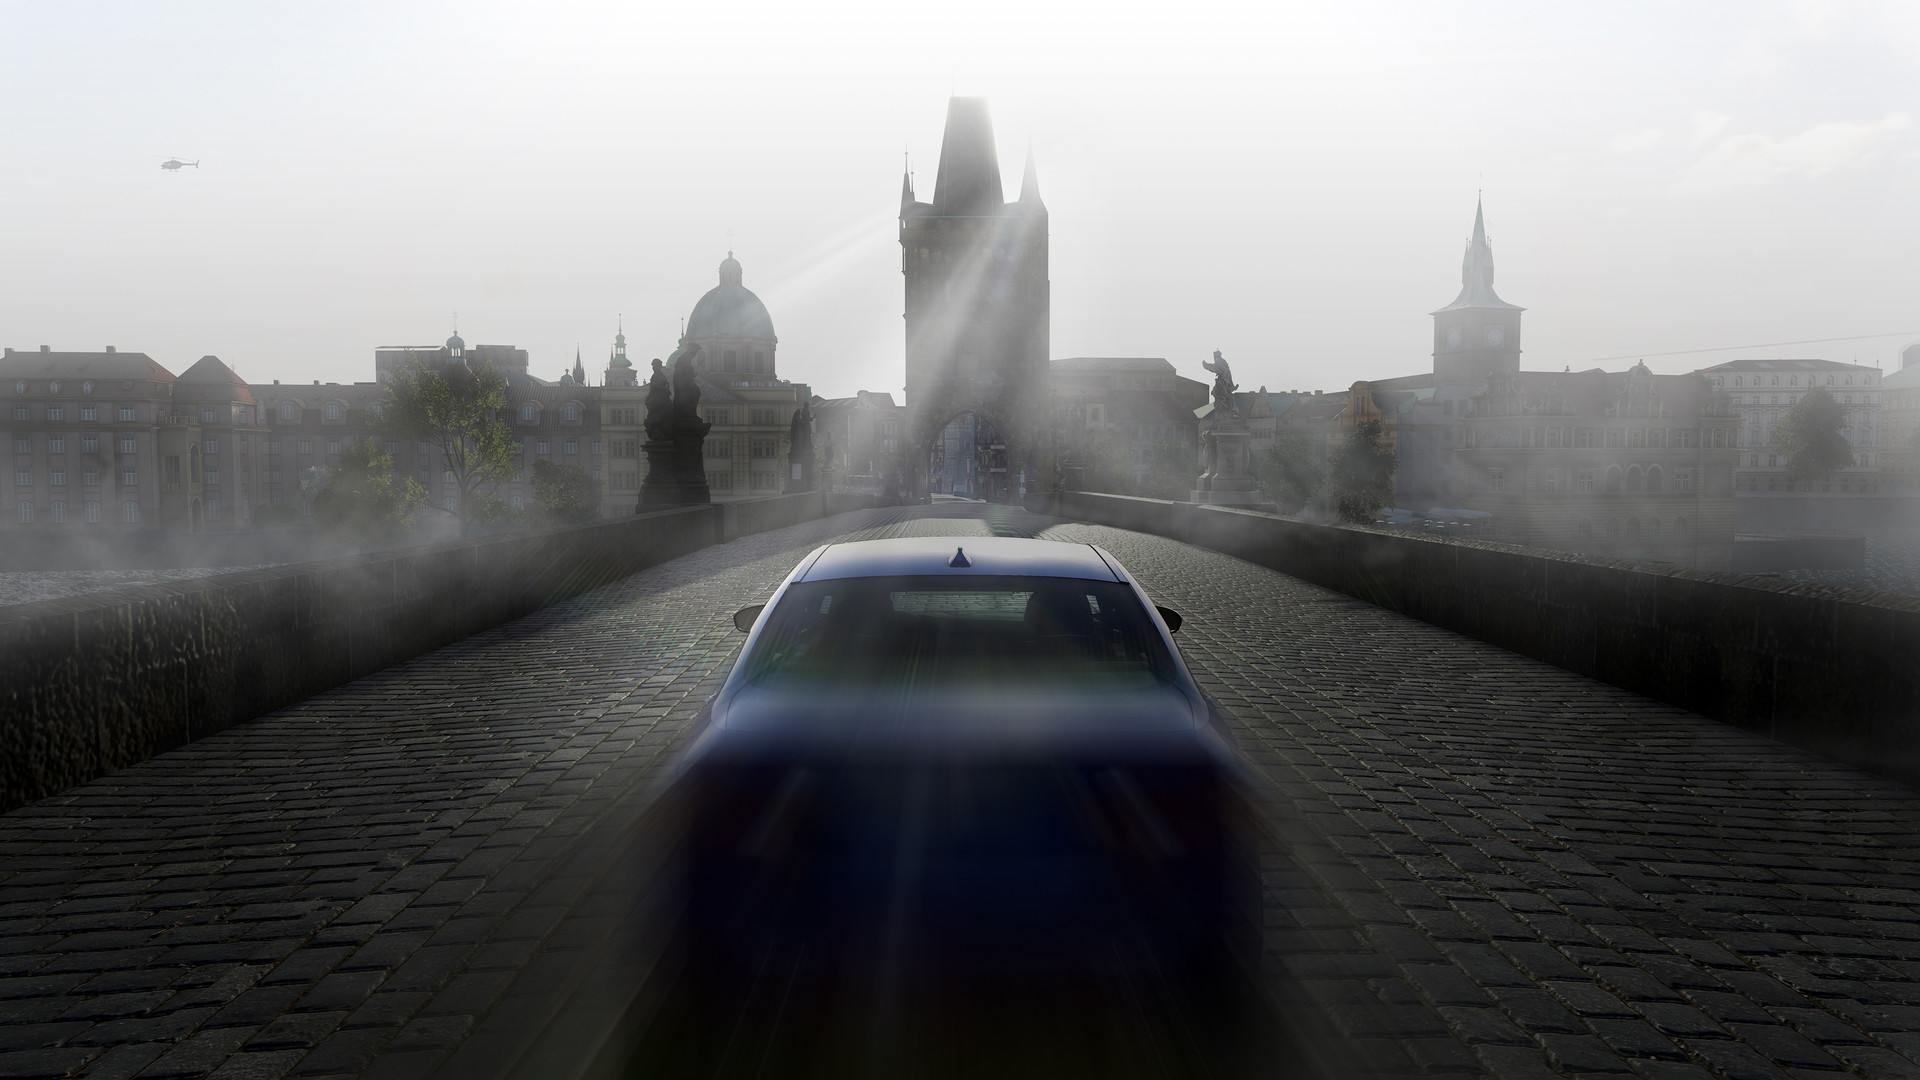 Sherif habashi prague t13 charles 3rdpov screenshot v01 carblurred lores50